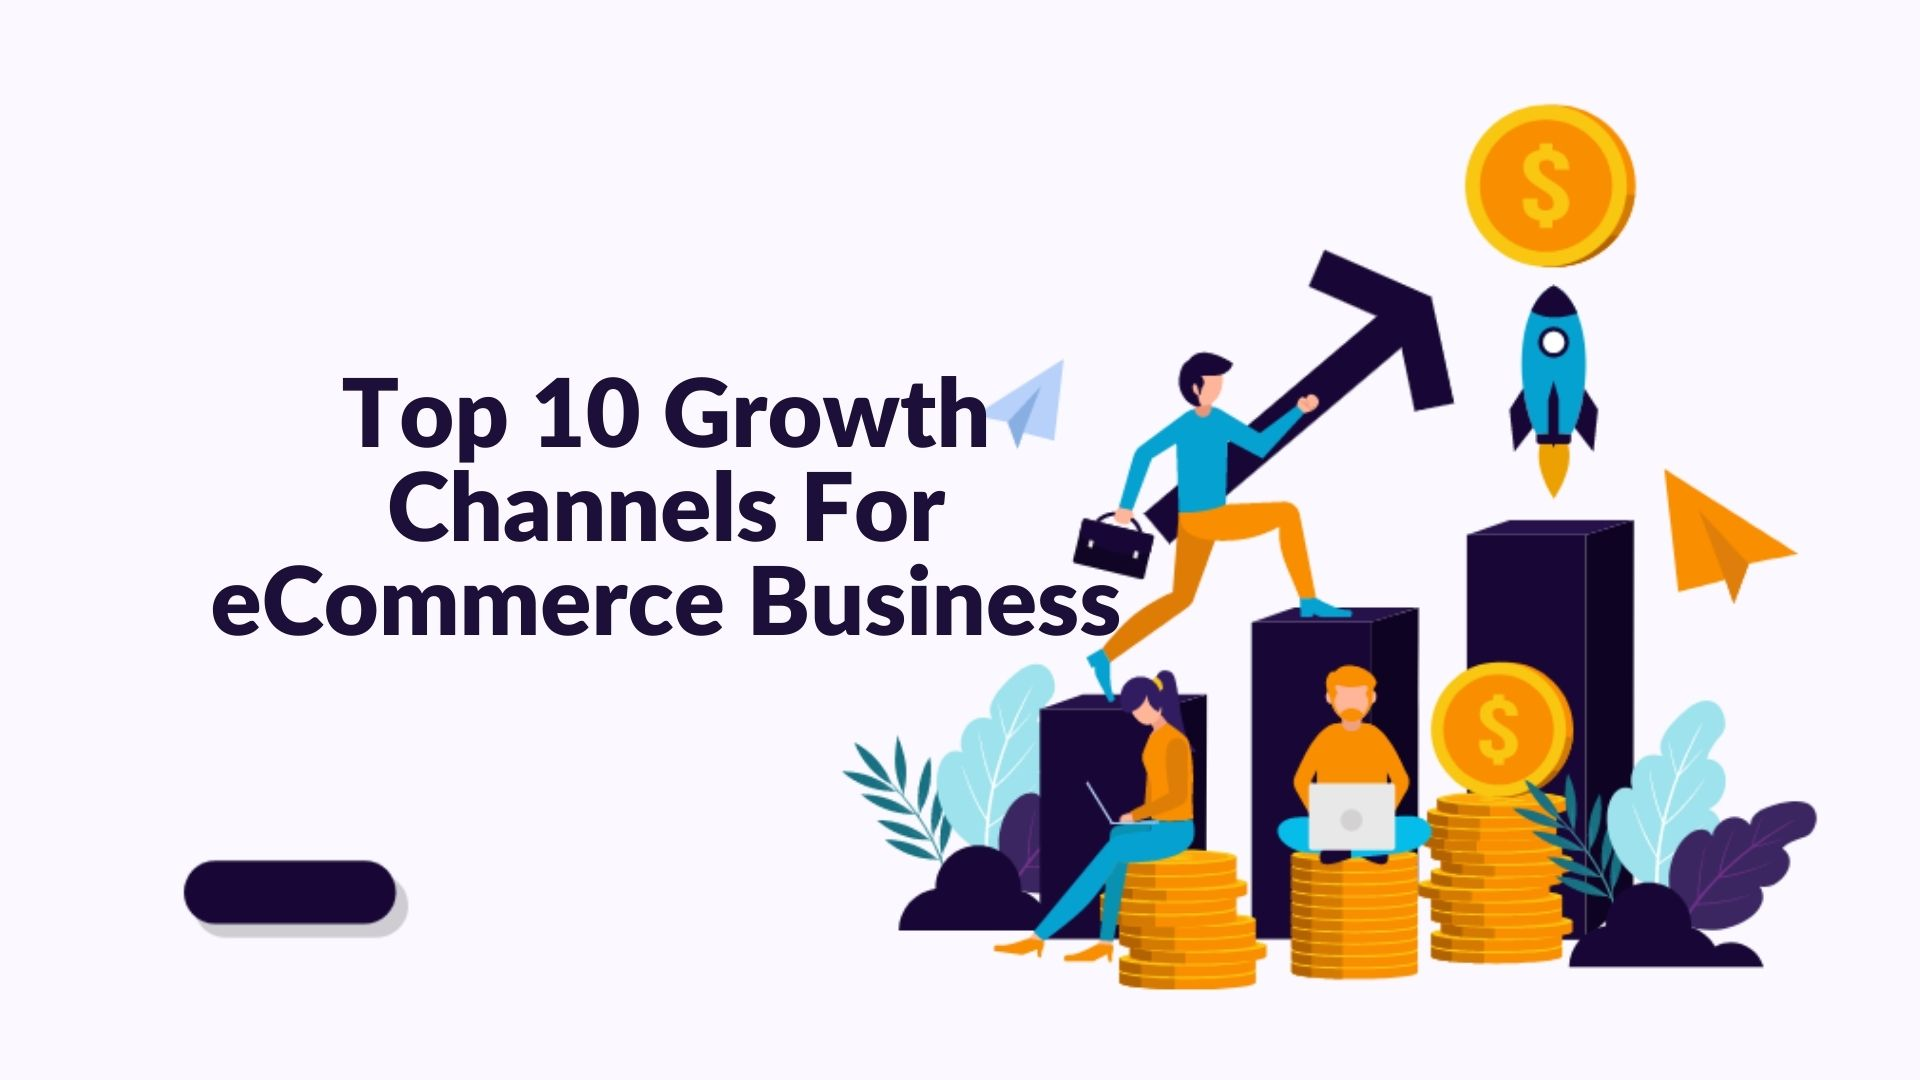 Top 10 Growth Channels For eCommerce Business